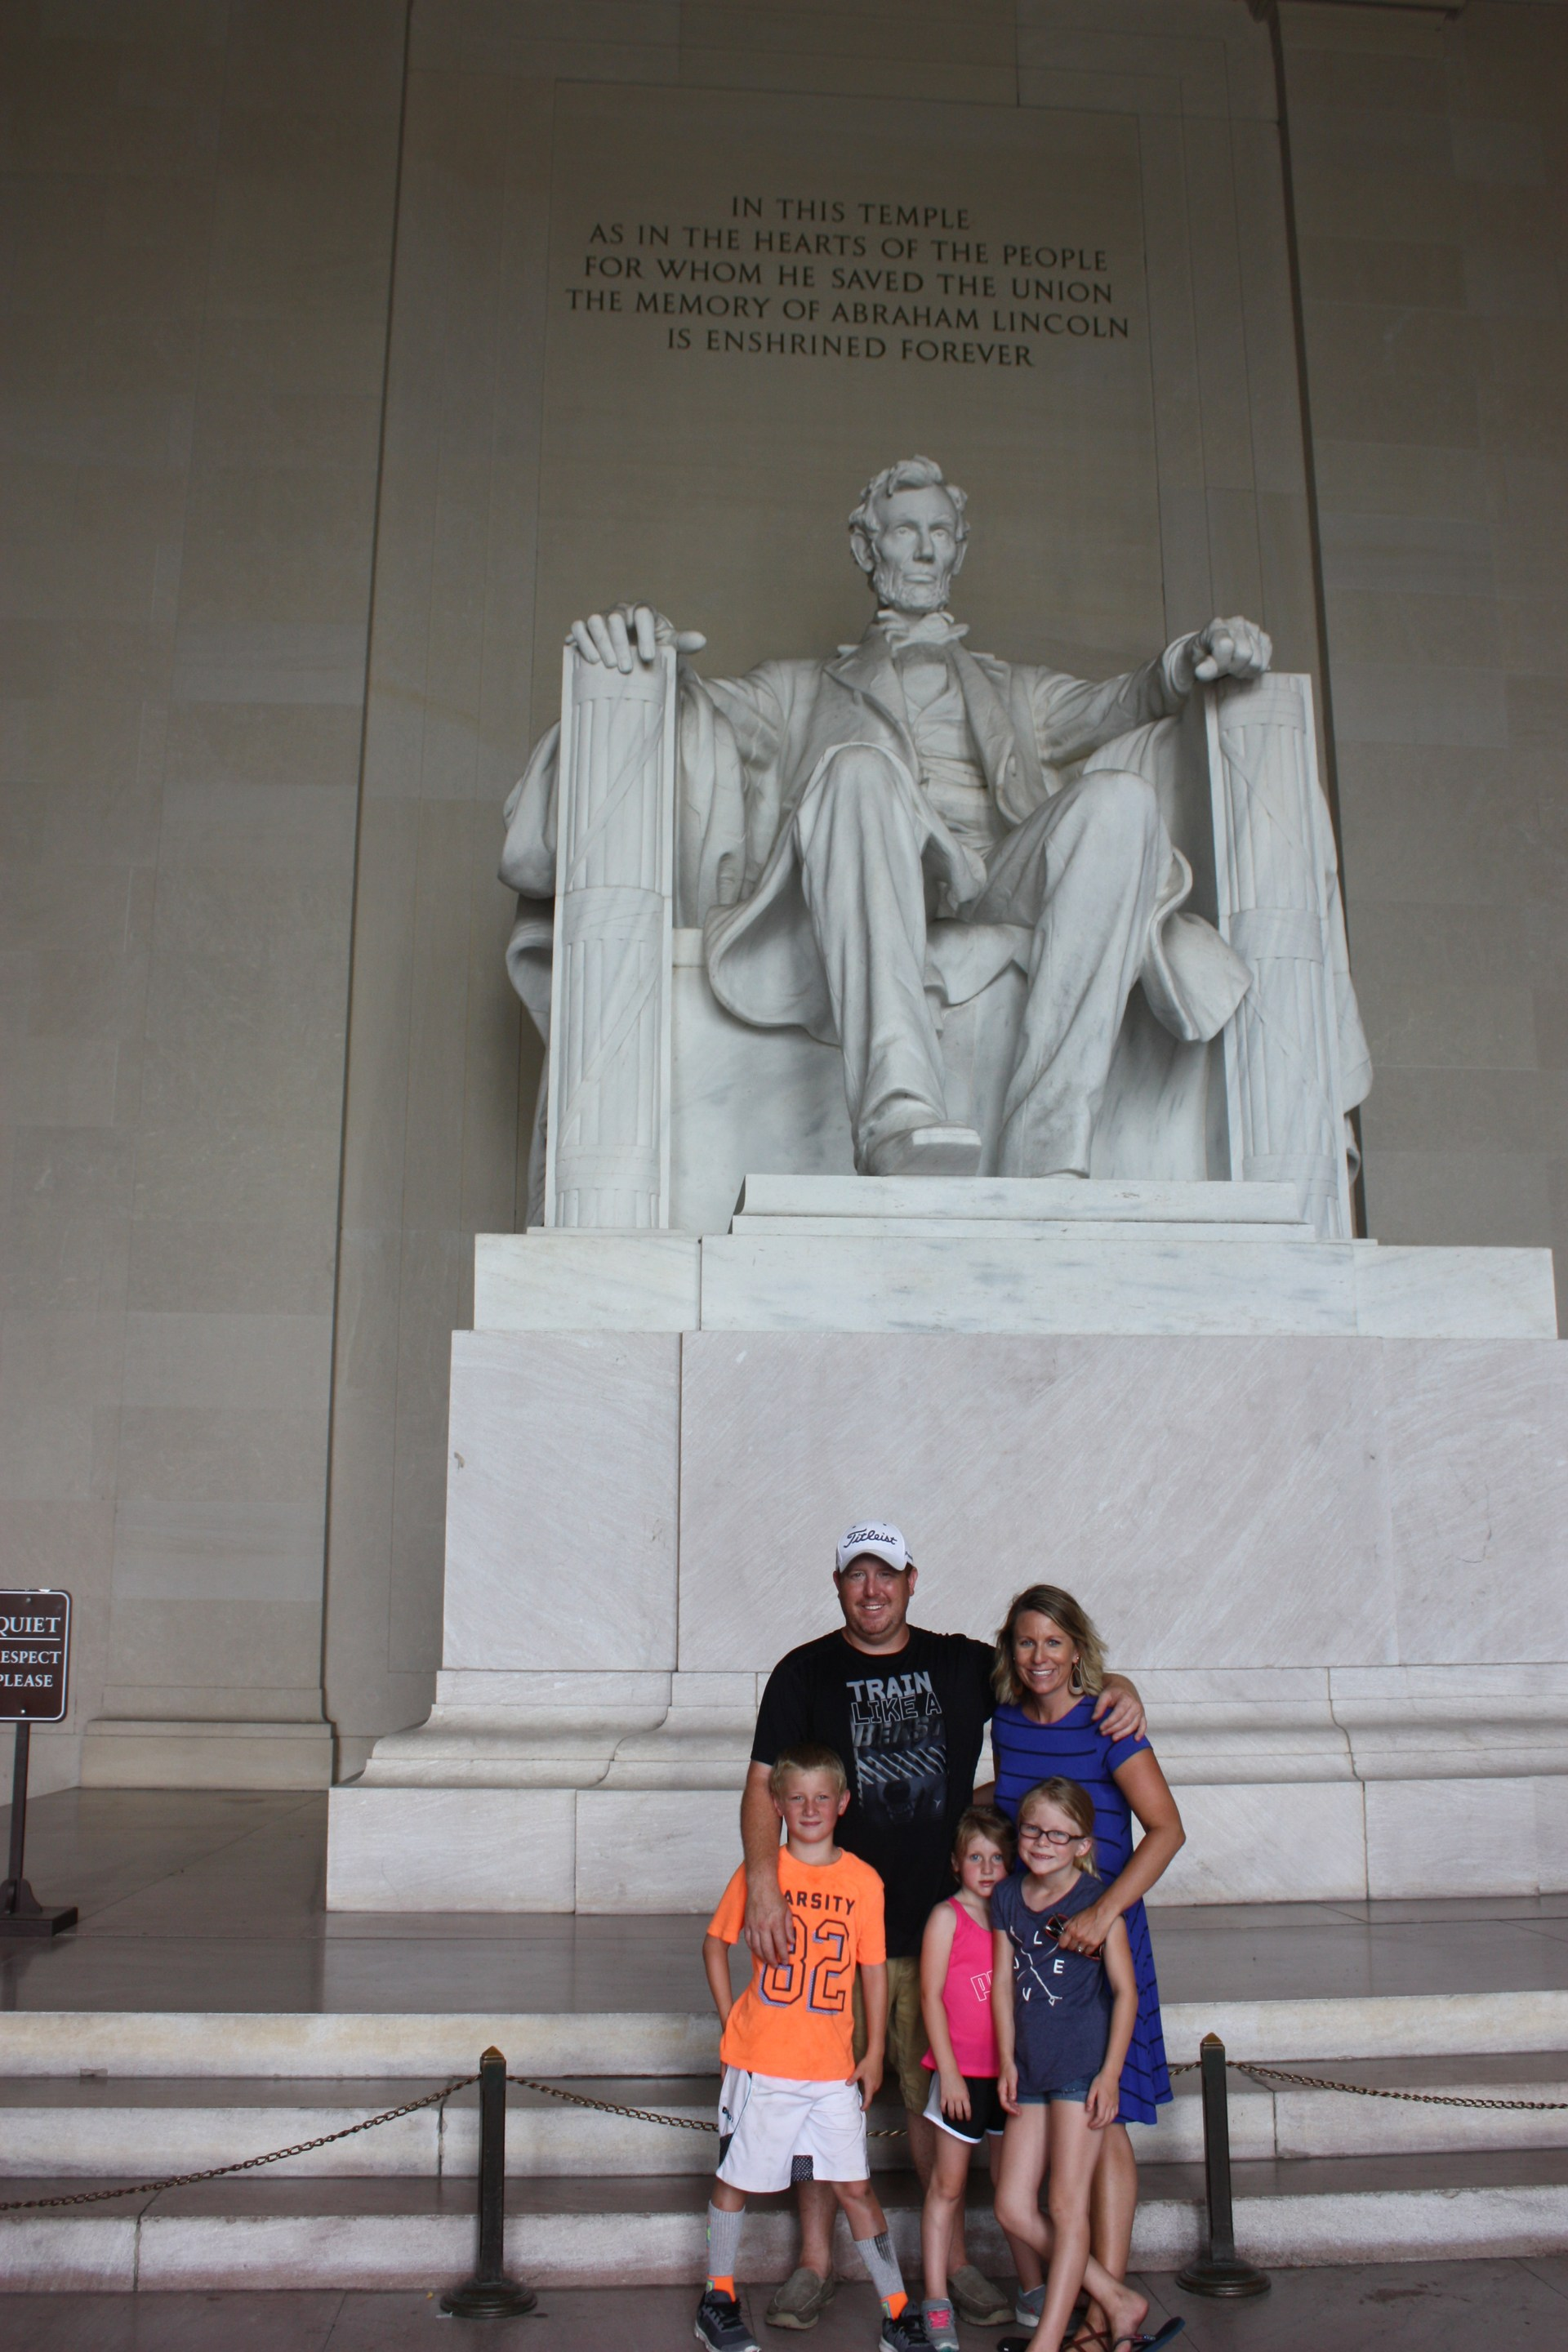 Family Visit to D.C.